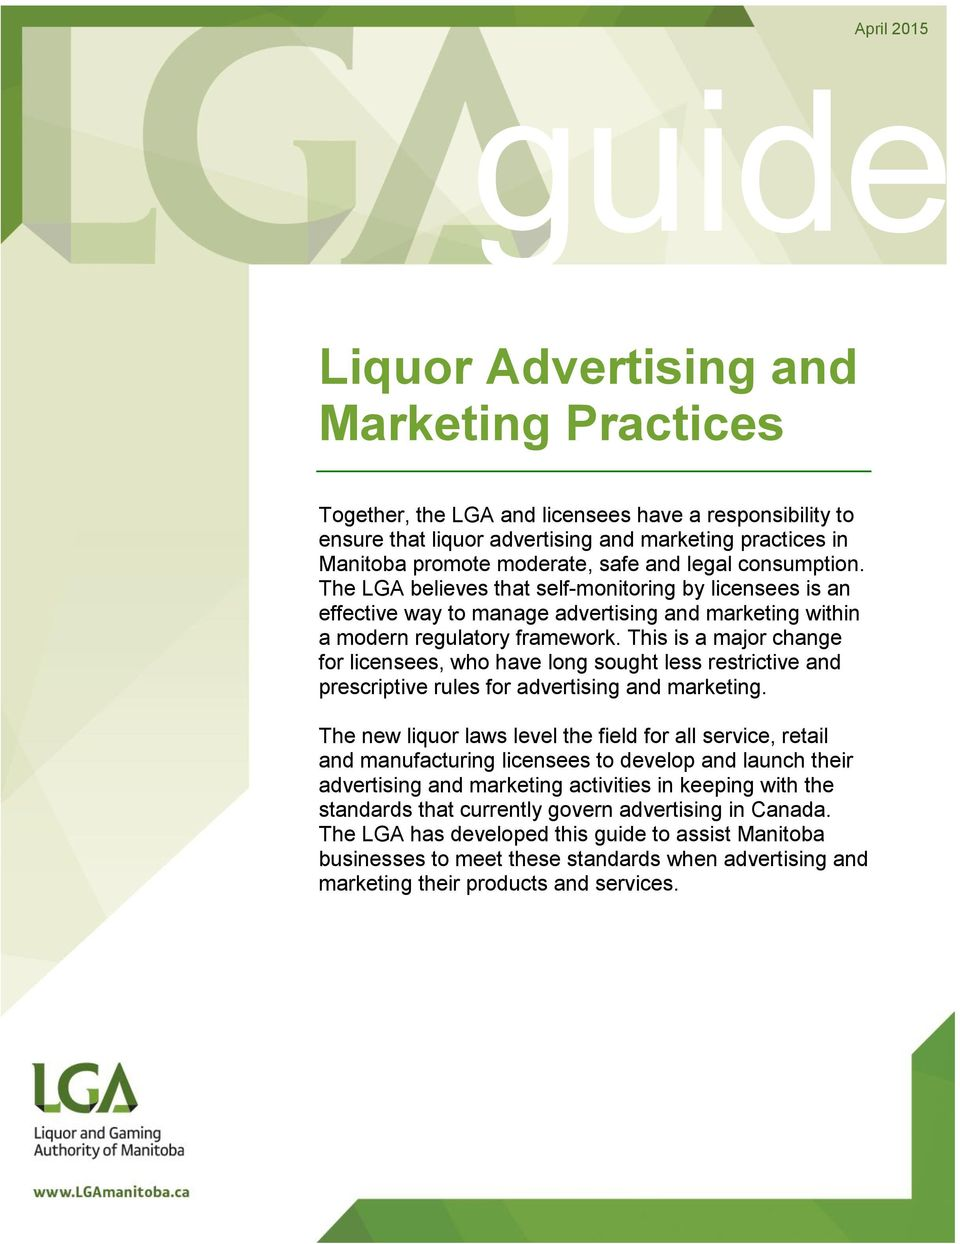 This is a major change for licensees, who have long sought less restrictive and prescriptive rules for advertising and marketing.